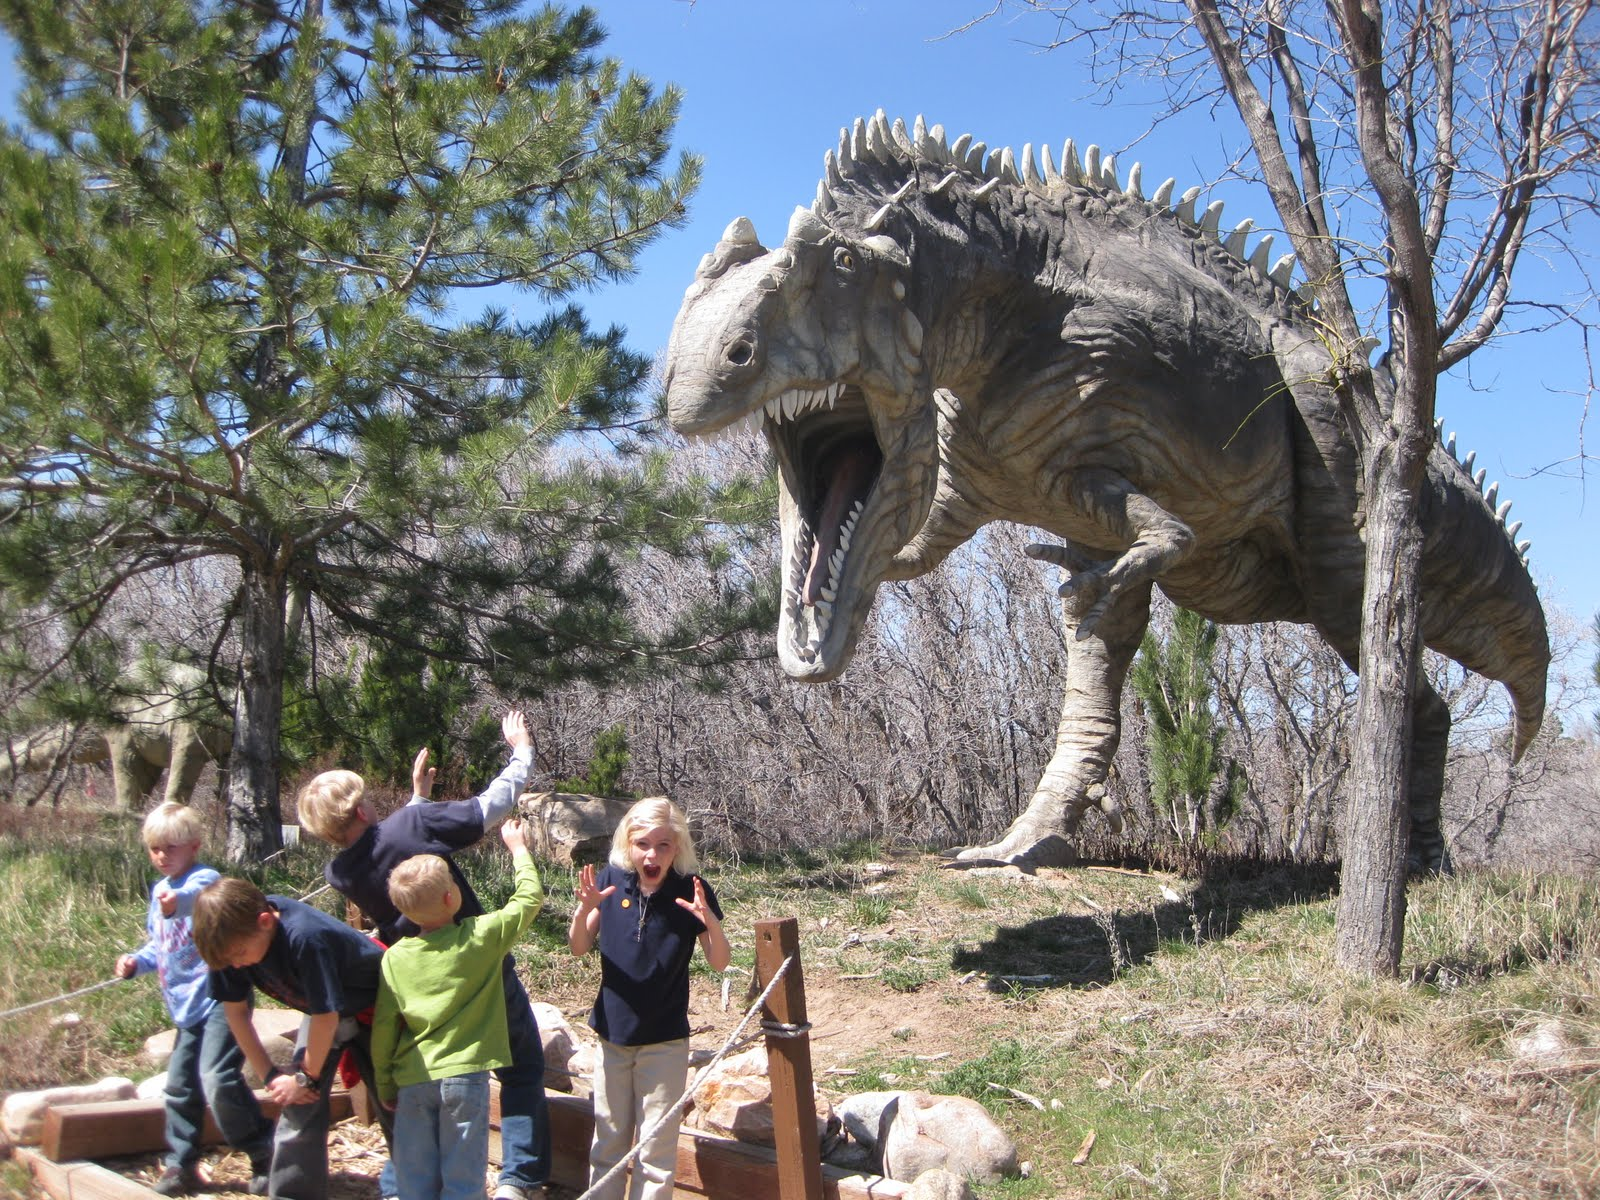 kids loved pretending the huge dinosaur replicas were coming to lifeDinosaurs In Real Life